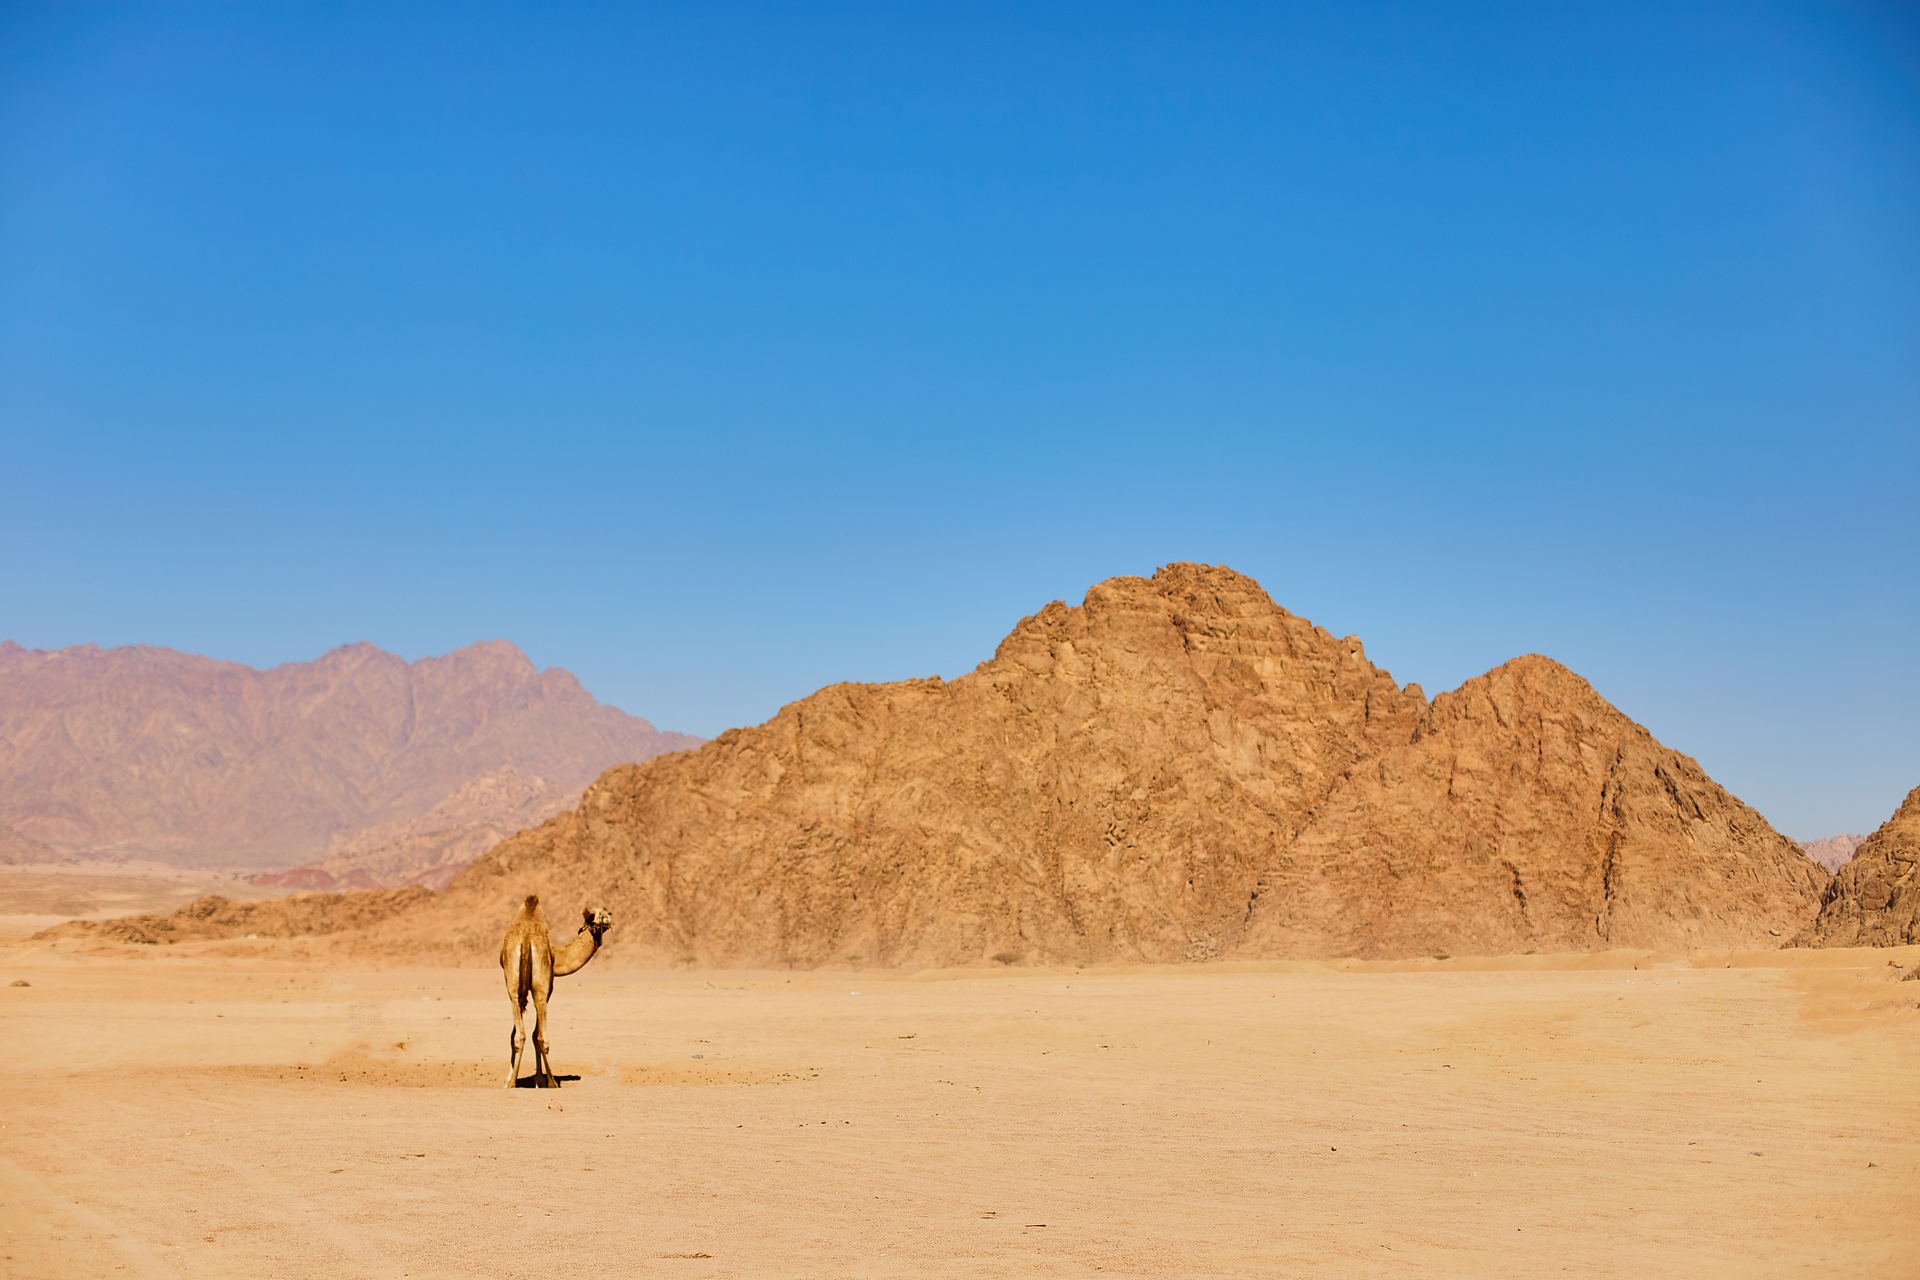 One Camel stay on a desert land